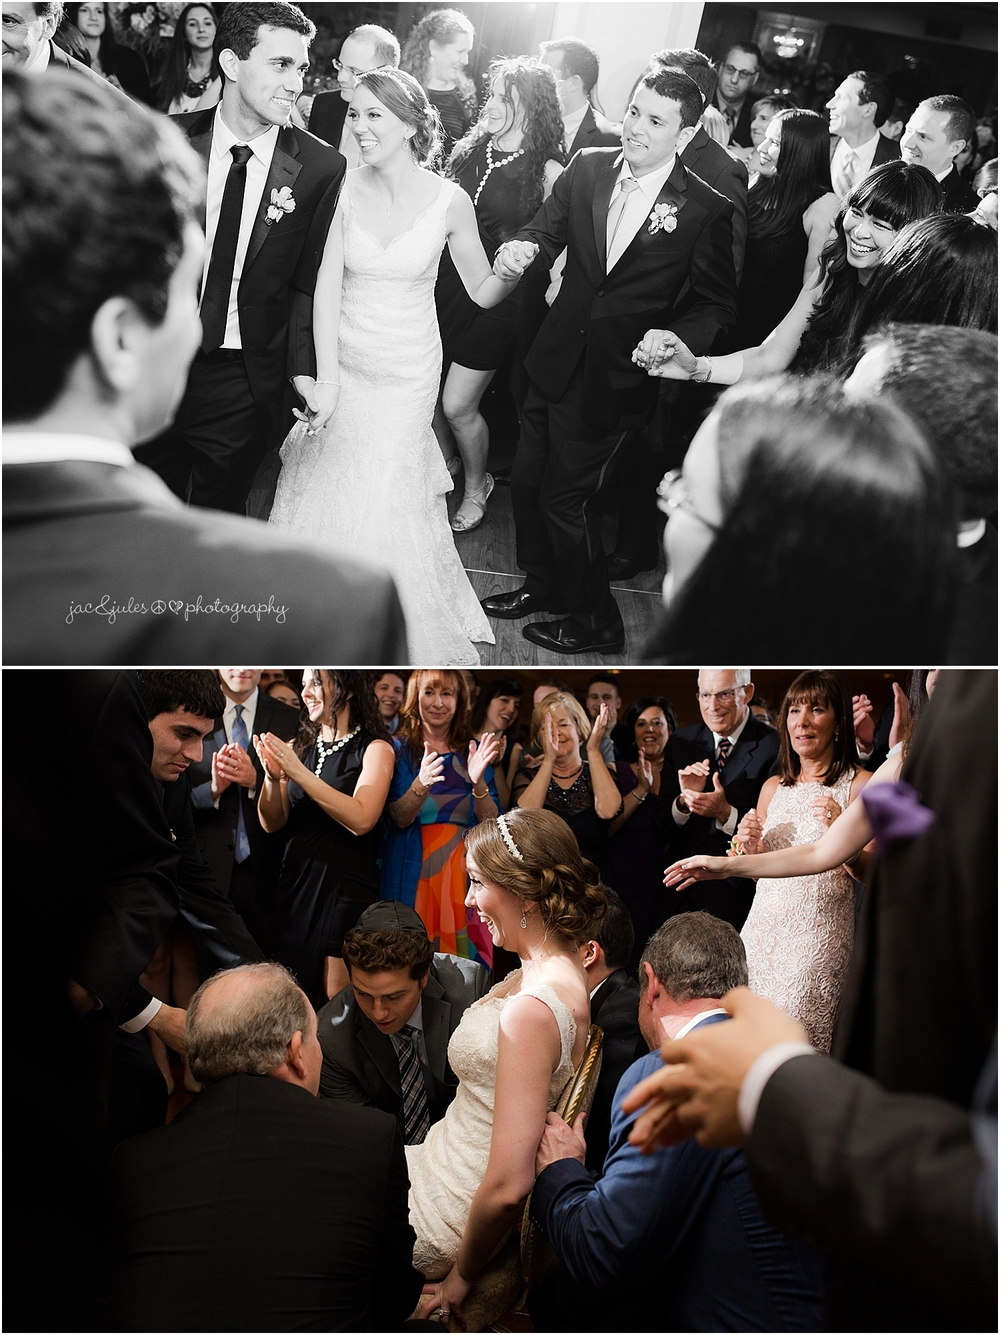 jacnjules photograph a jewish wedding at the olde mill inn reception ballroom